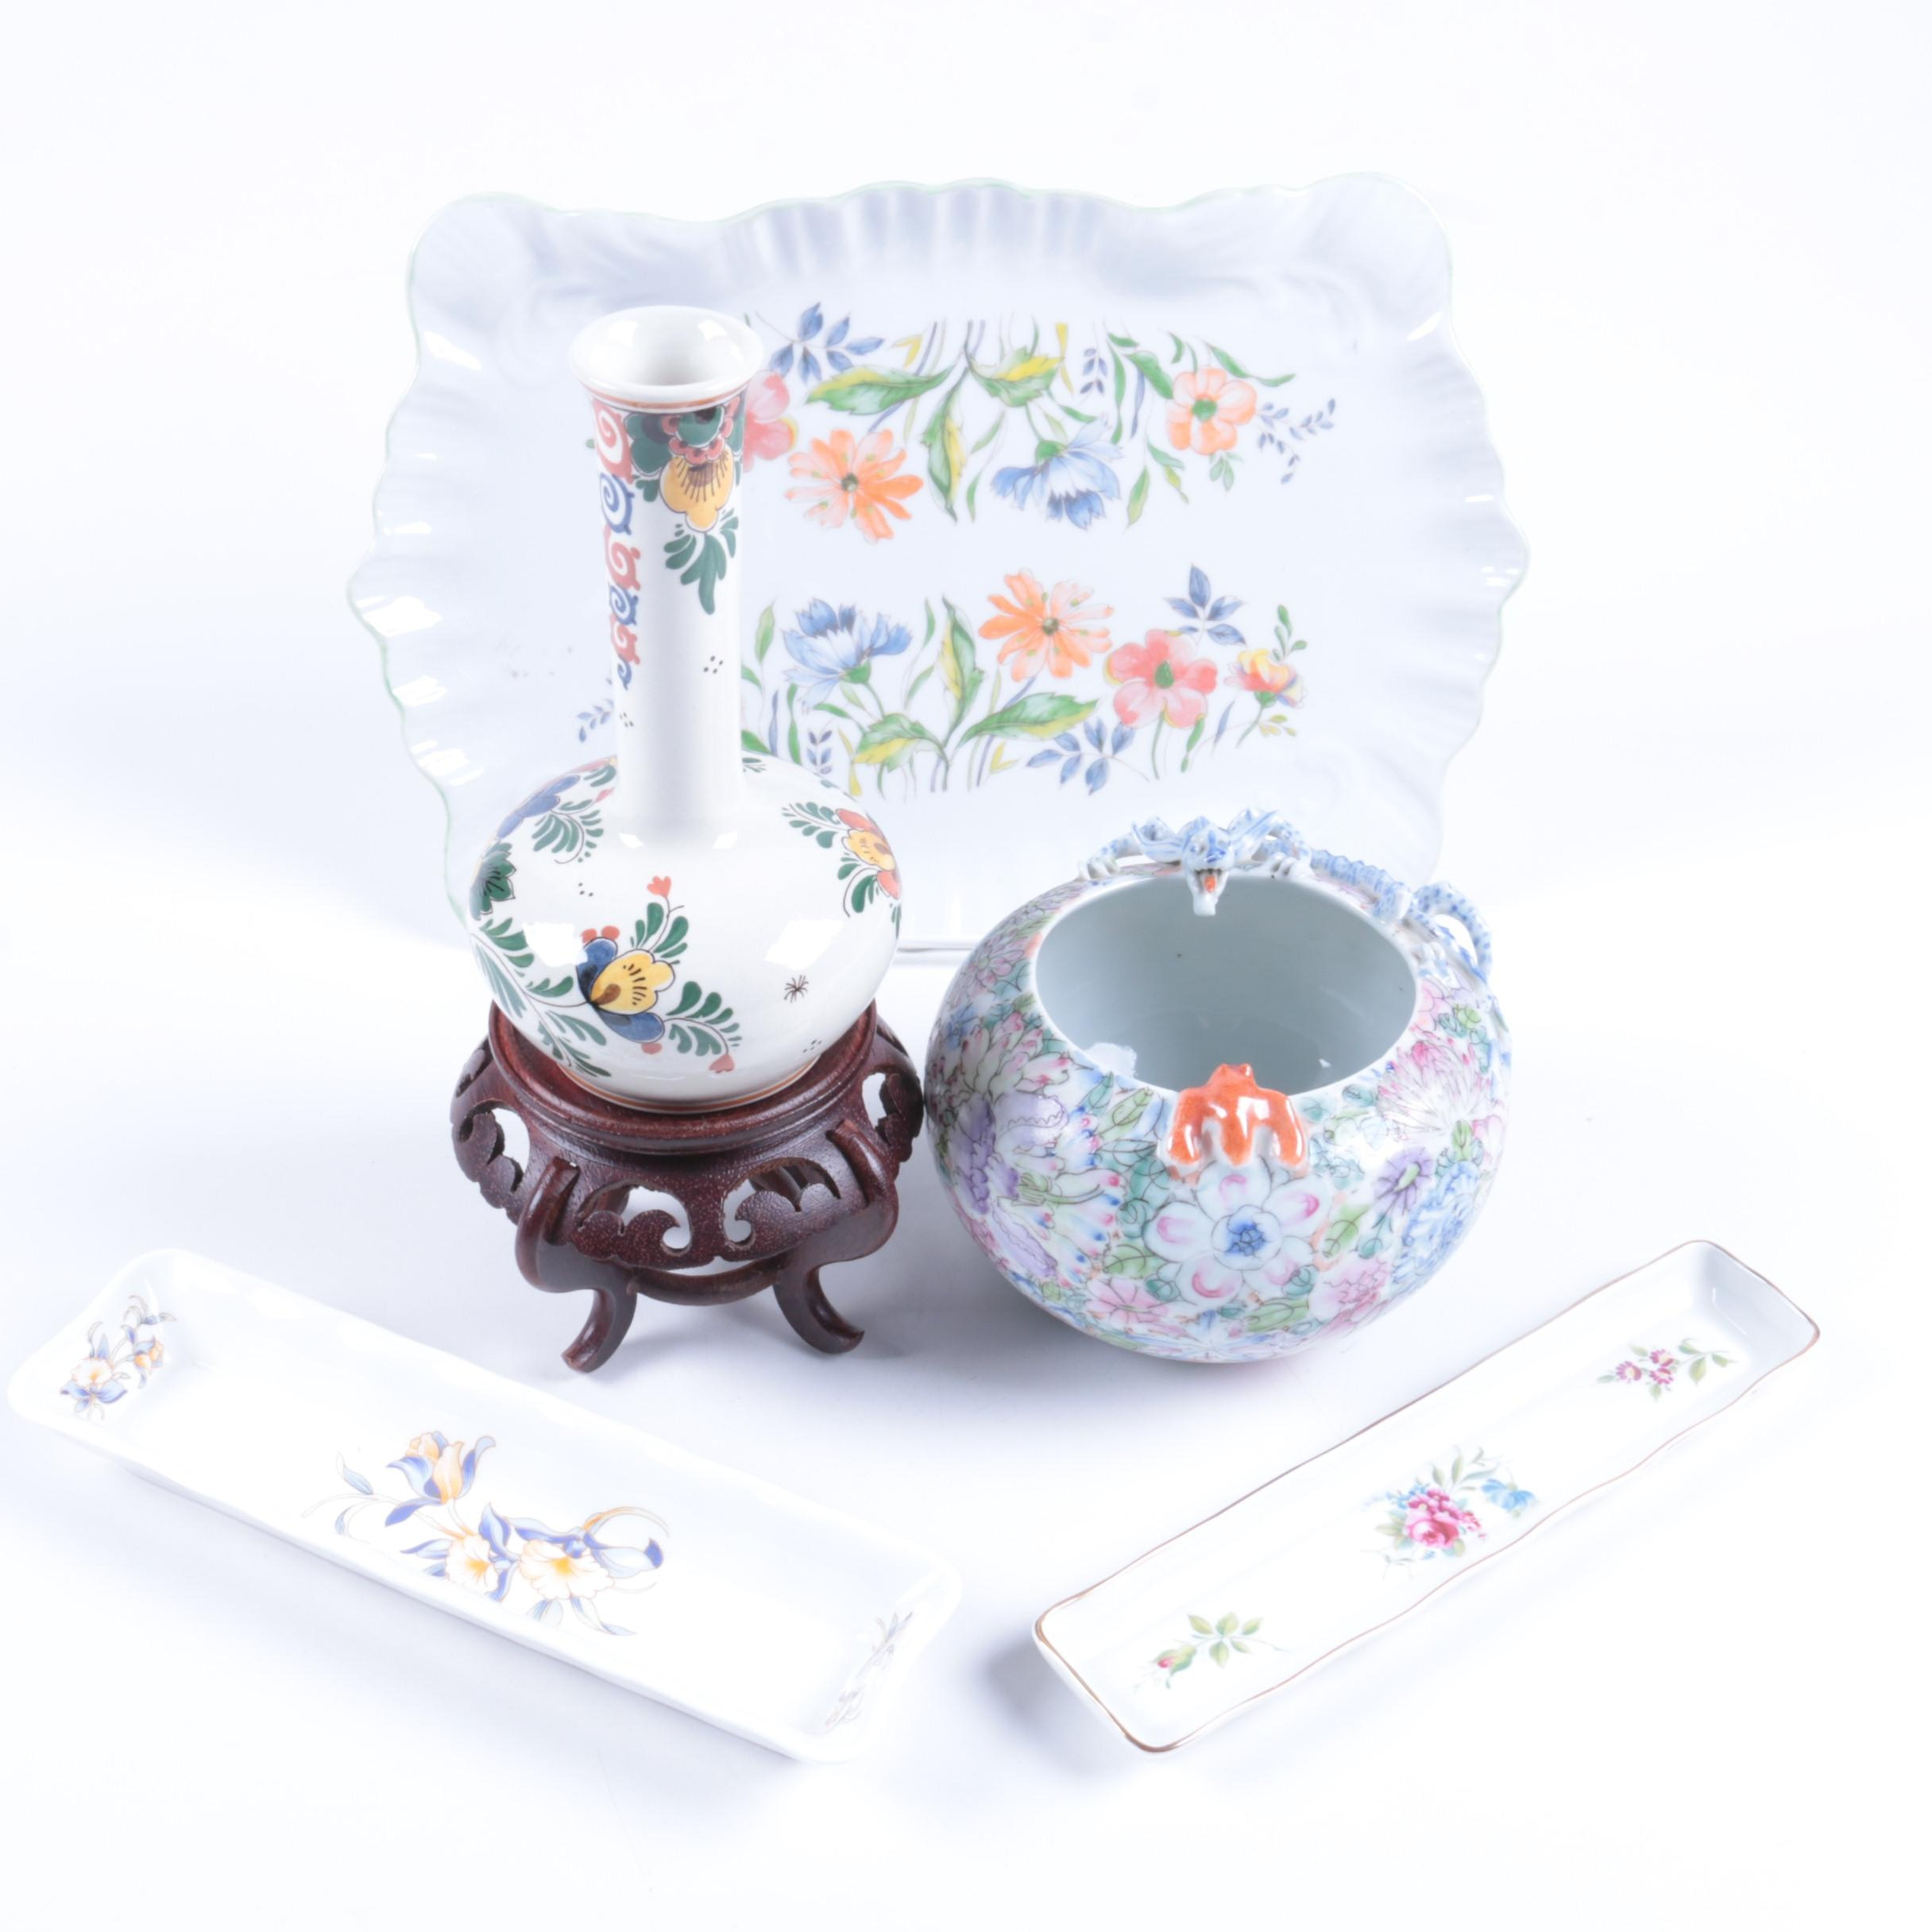 Floral Themed Porcelain and Ceramic Decor including Aynsley